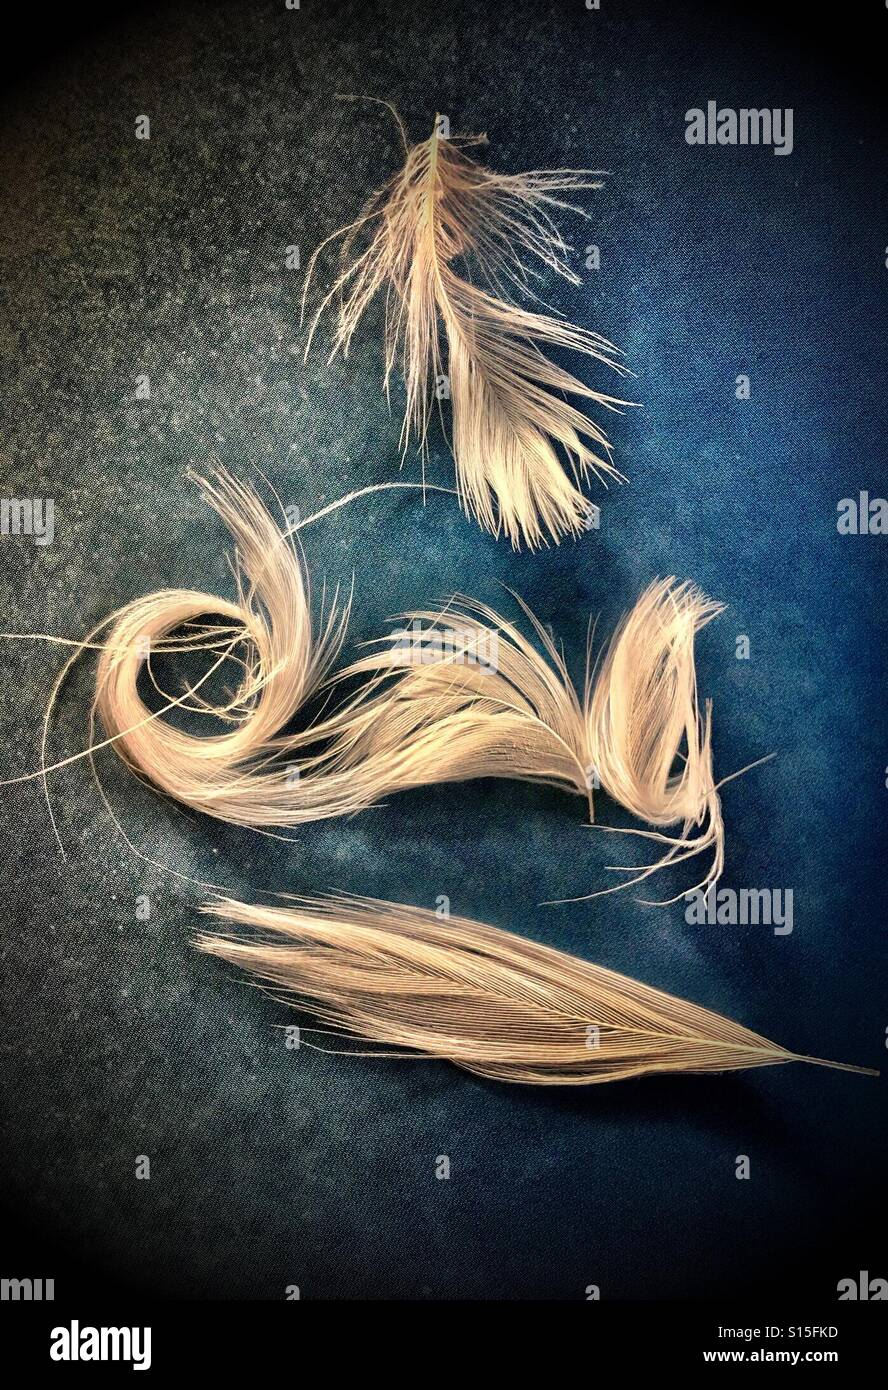 White feathers on a dark blue/black background. - Stock Image